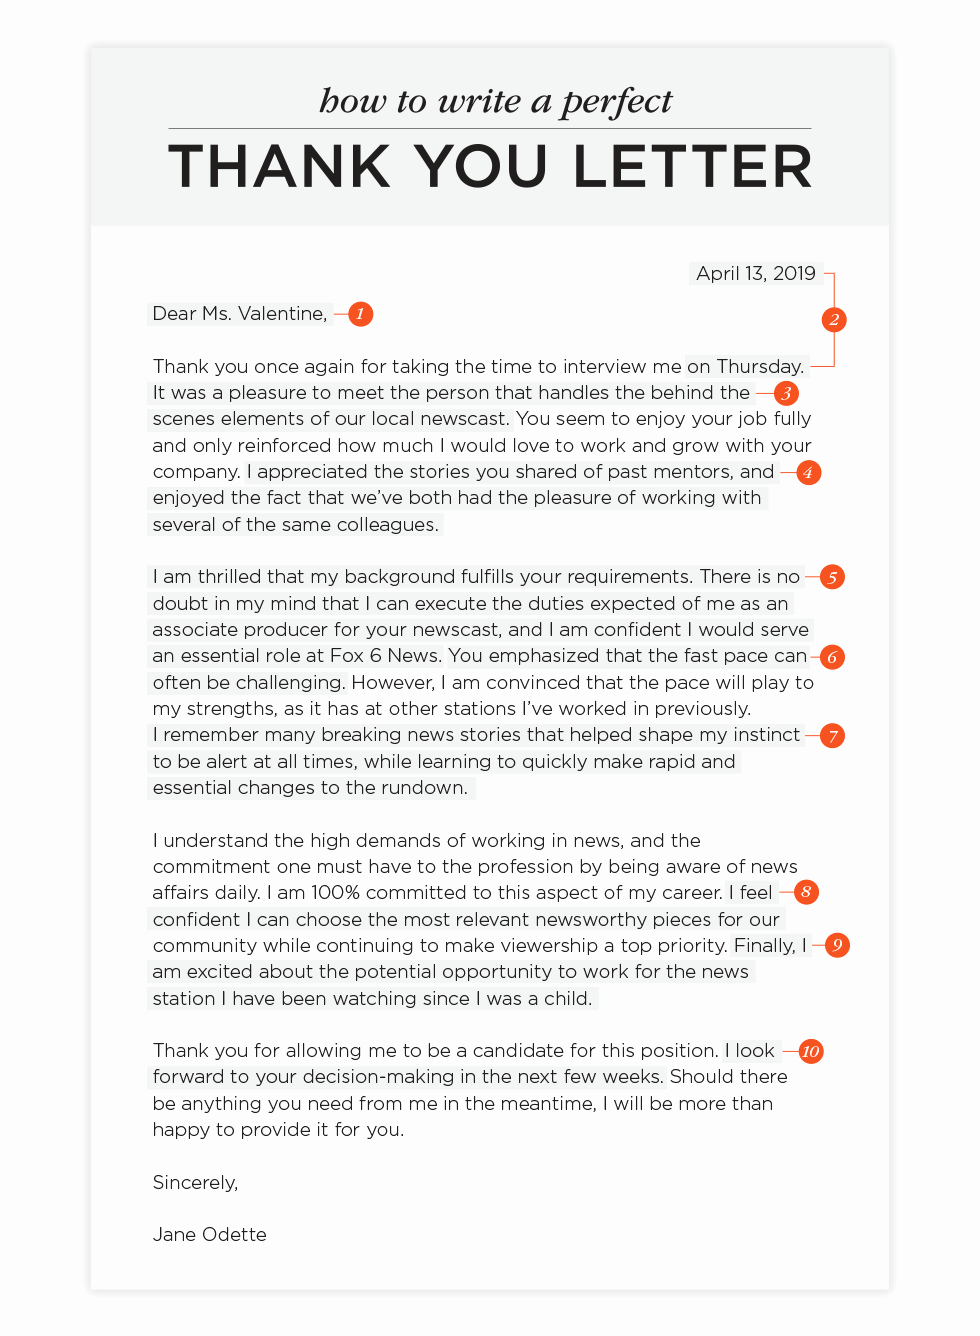 Thank You Note Sample Beautiful How to Write A Thank You Letter and Templates